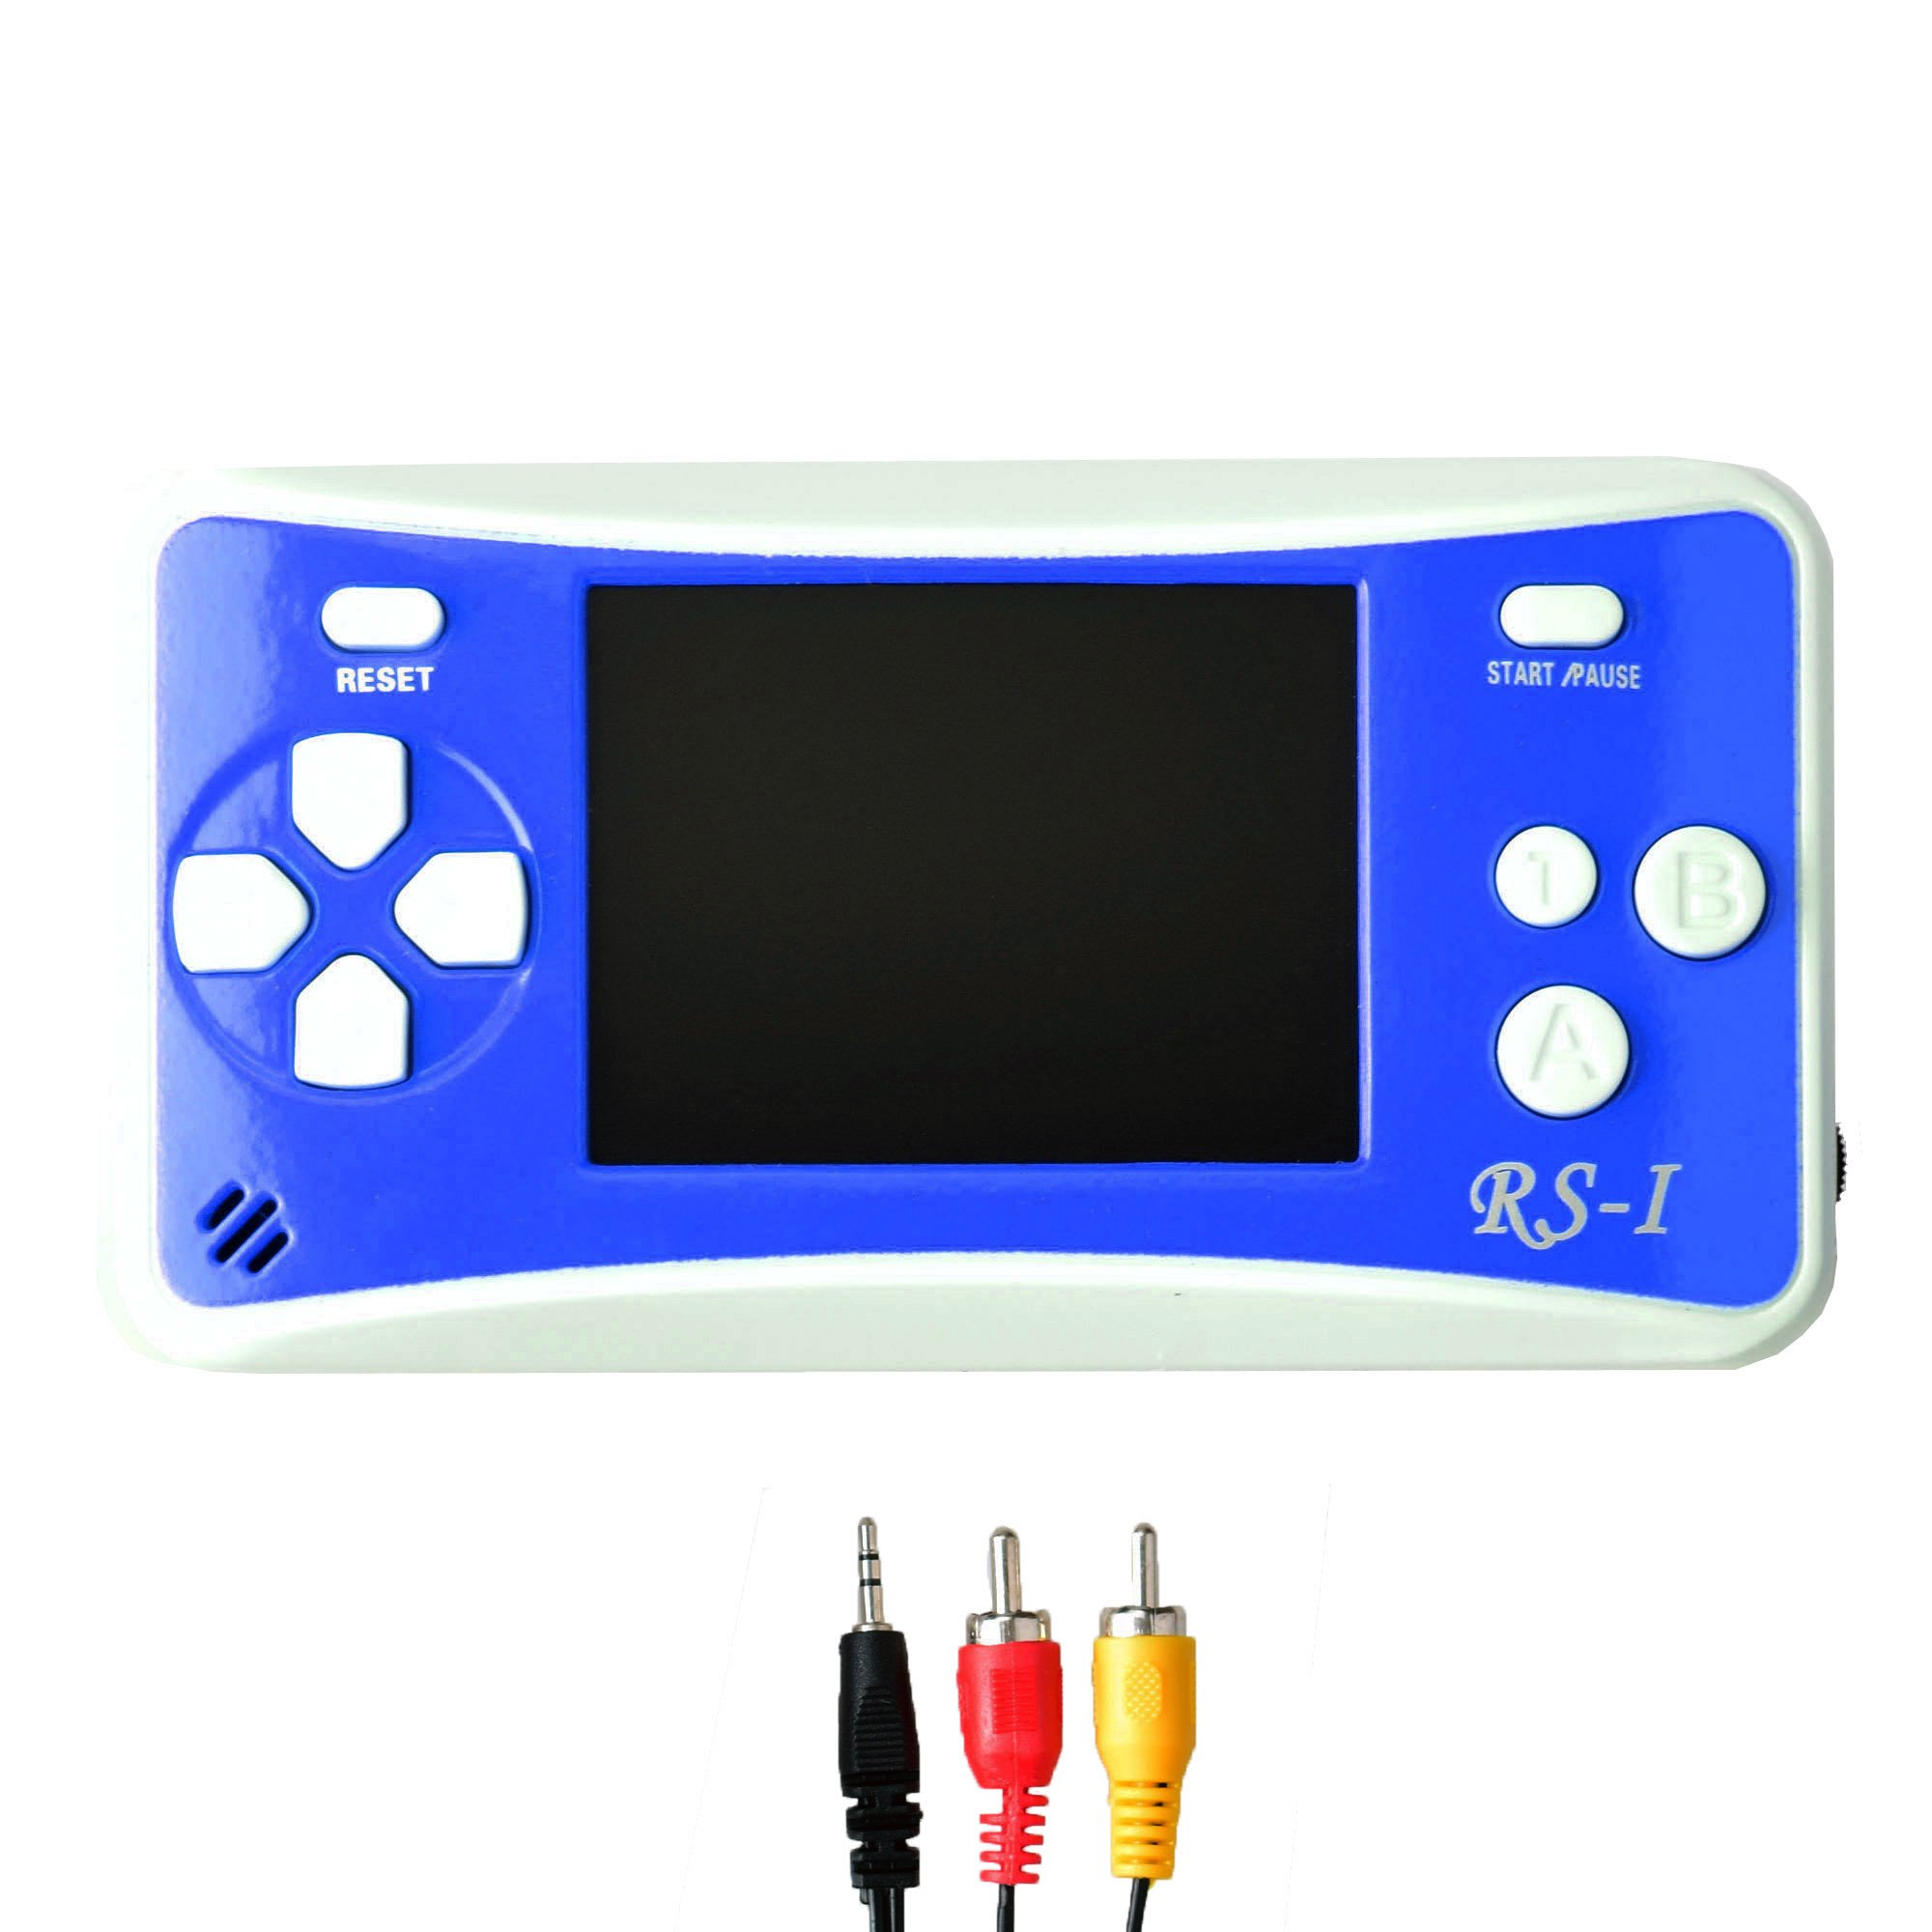 Gam3Gear 3 x AAA Built-in 152 Retro Classic Games 2.5'' LCD Handheld Game Console with Speaker Blue/White by Gam3Gear (Image #1)